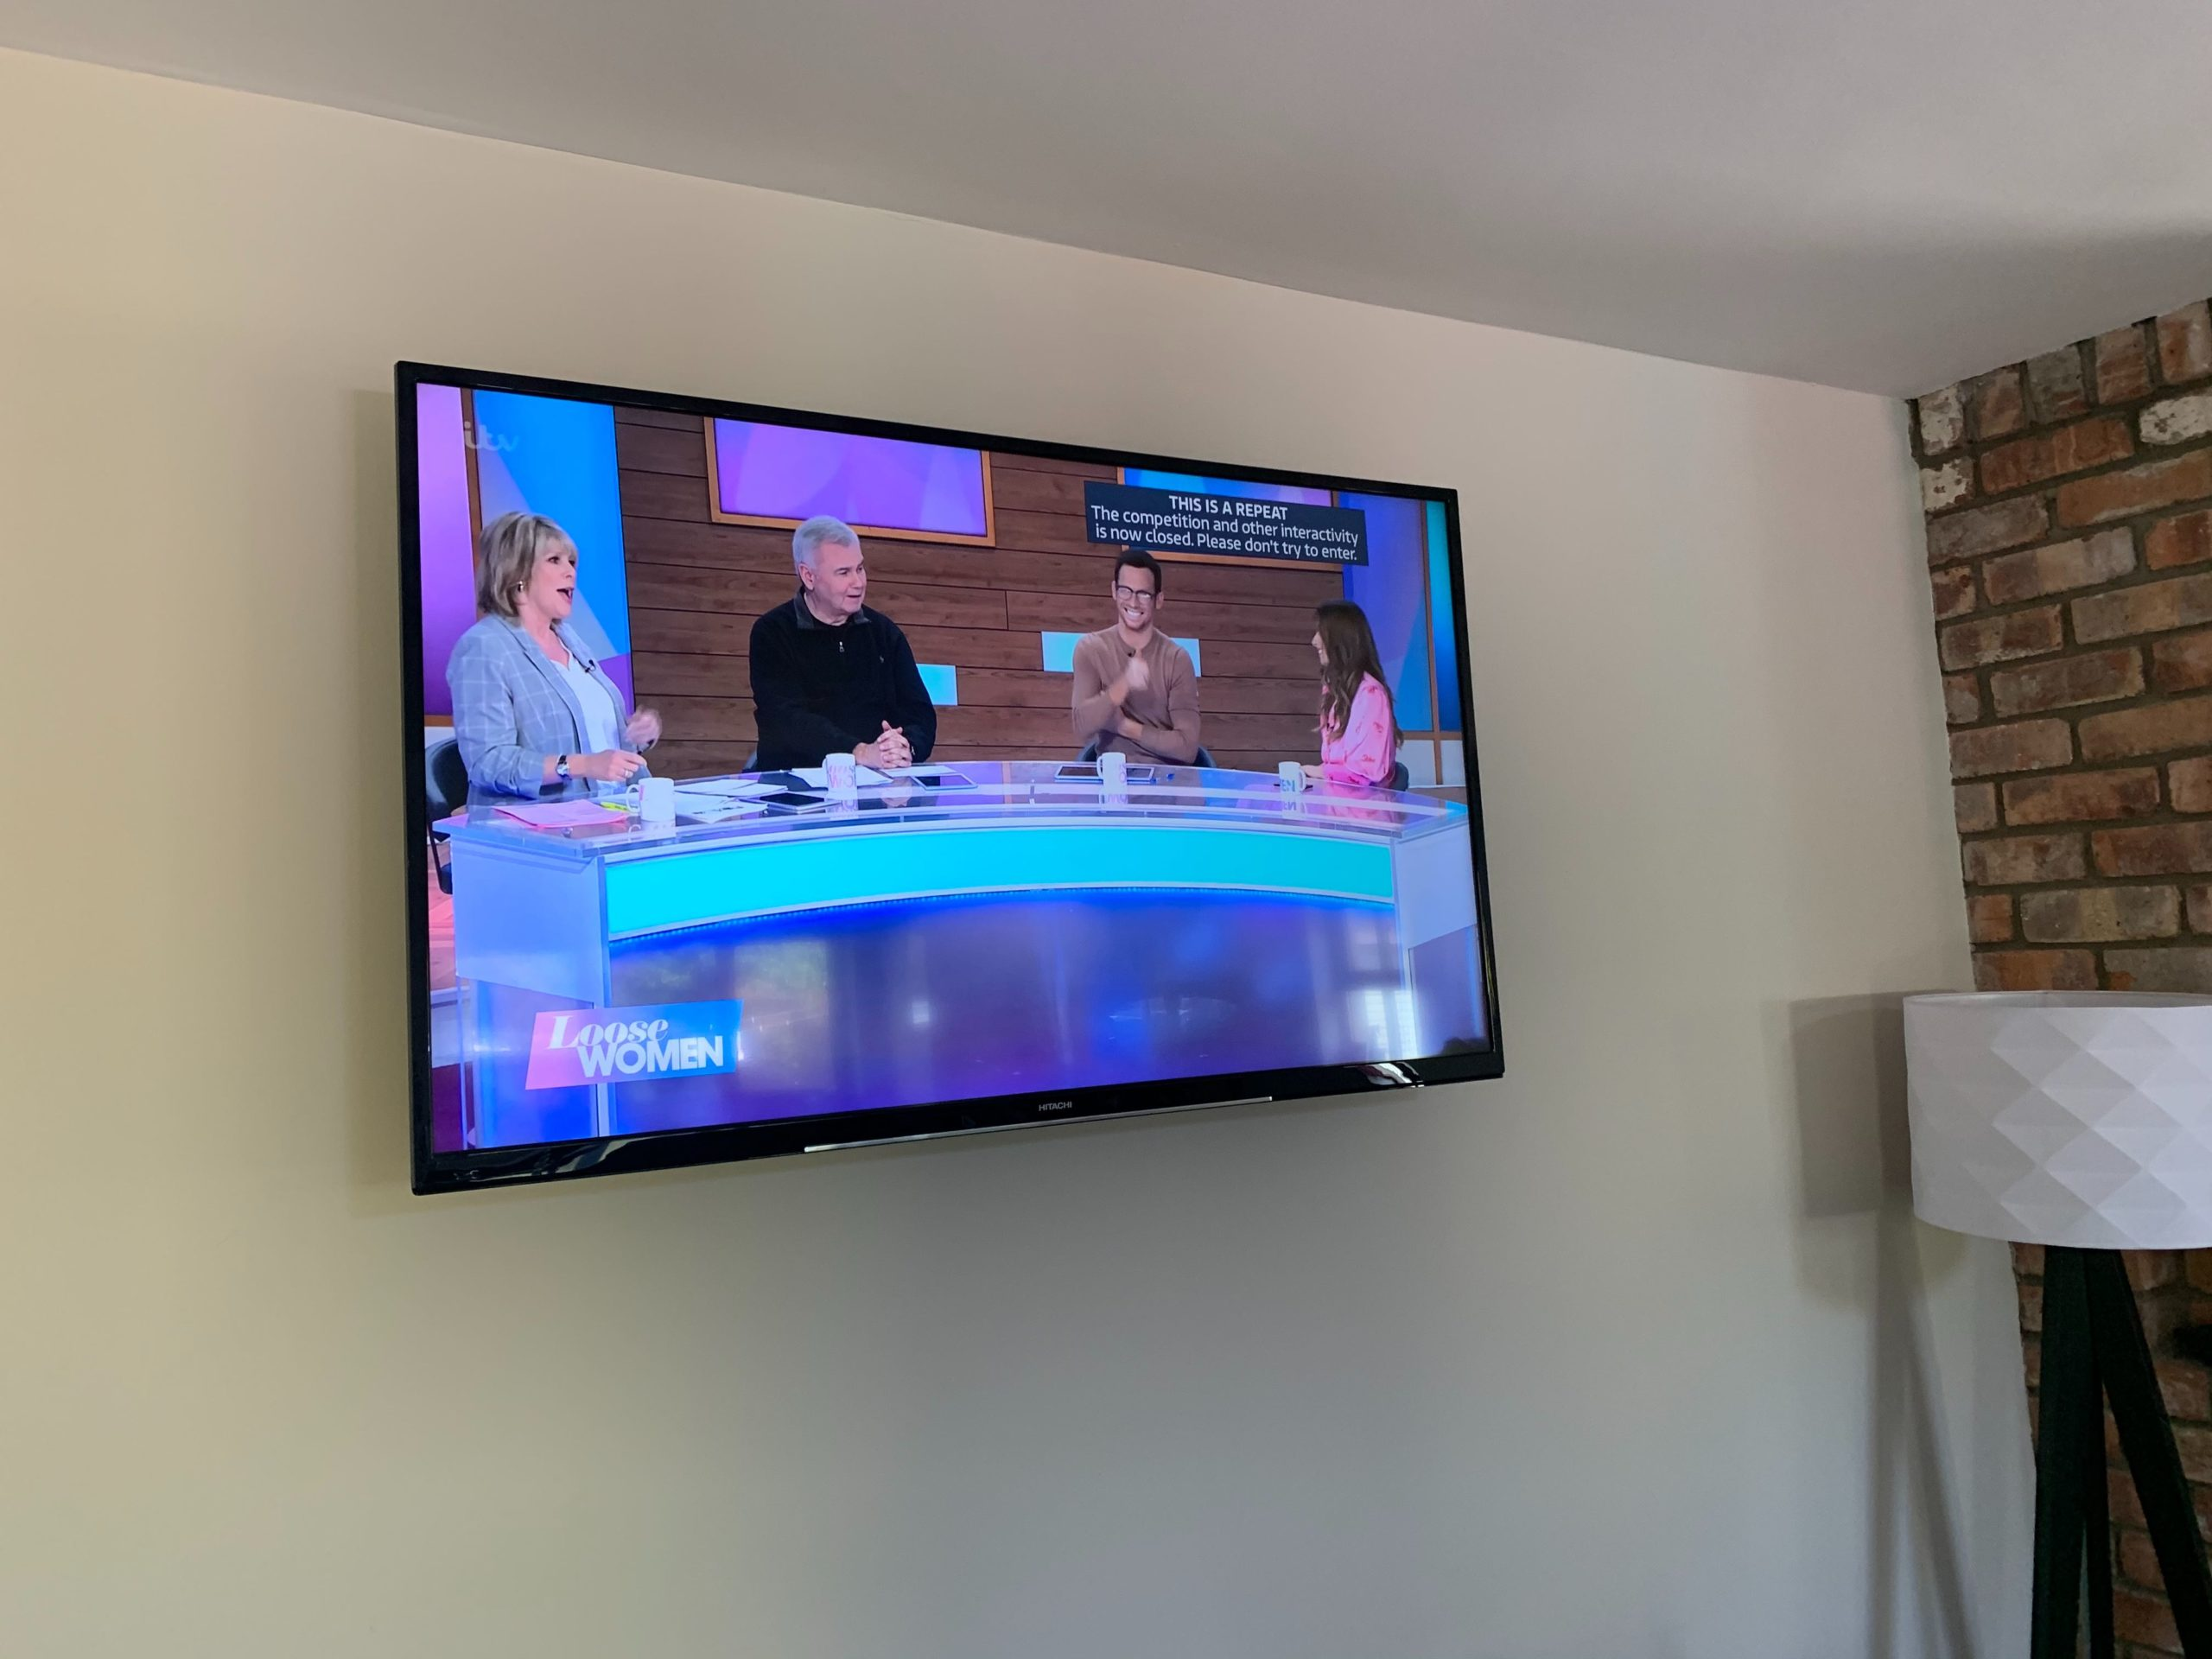 watching loose women is part of the new normal